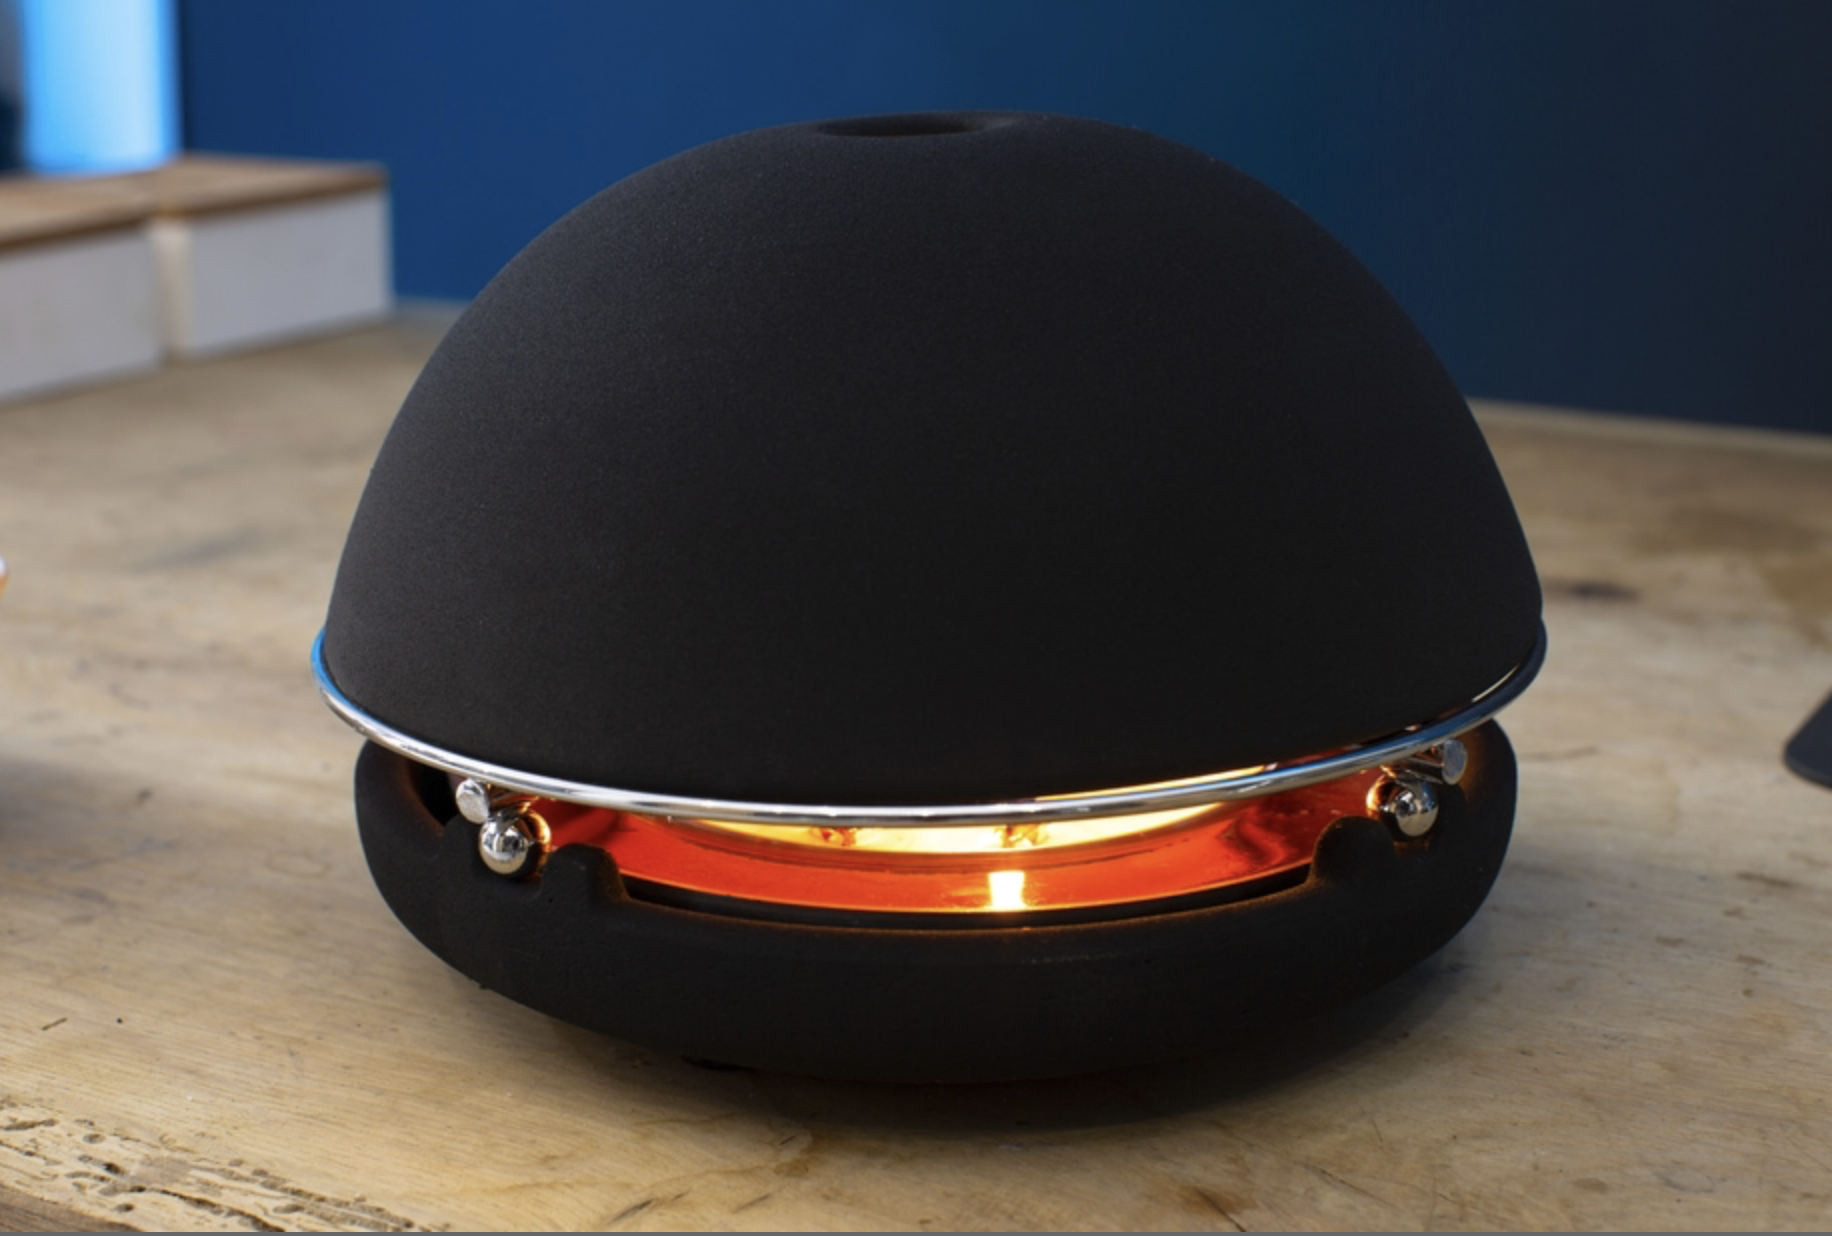 Egloo in black. The company offers essential oils to give scent if you want too